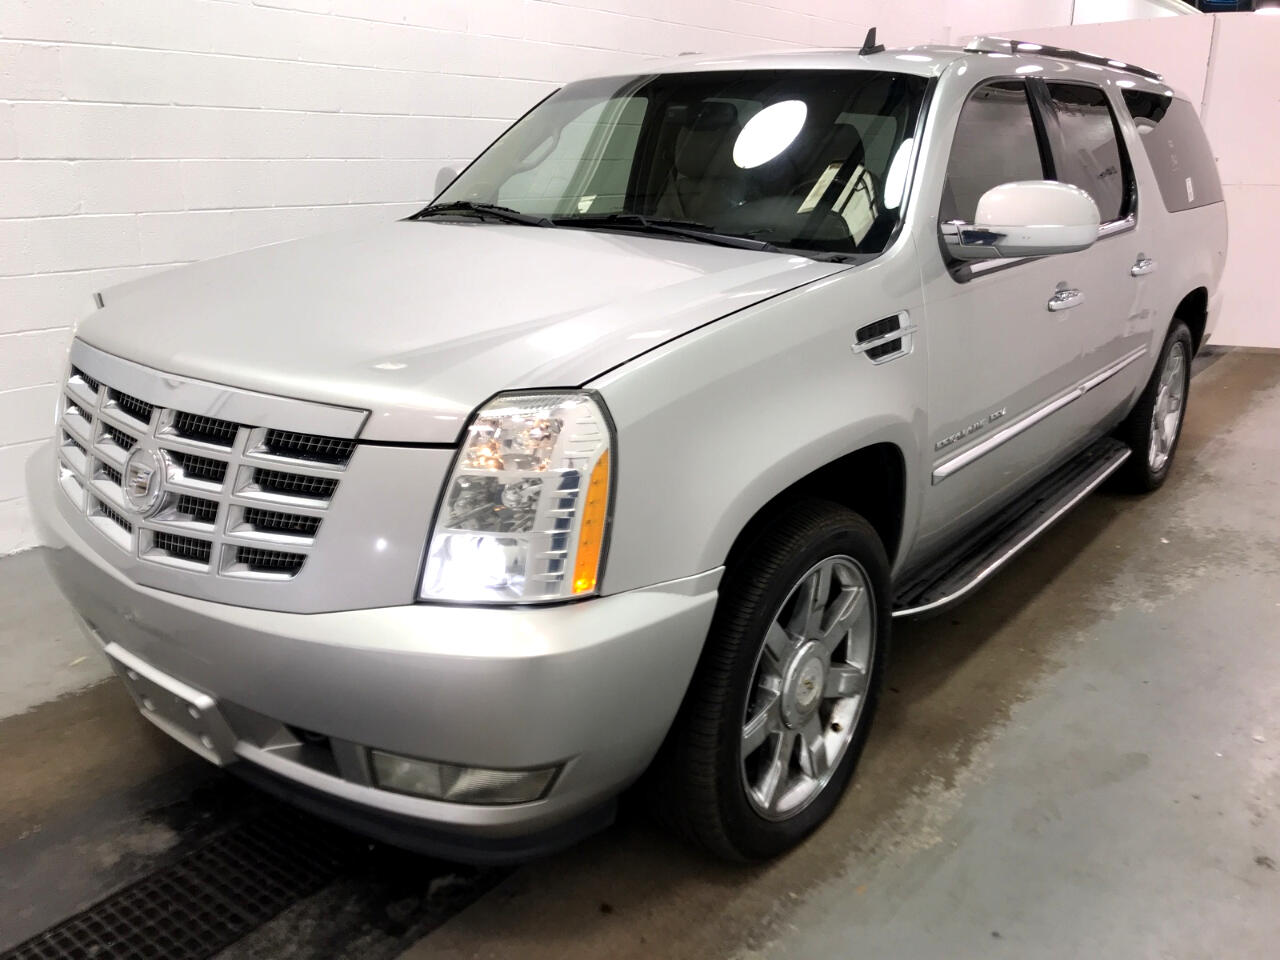 Cadillac Escalade ESV AWD 4dr Luxury 2011